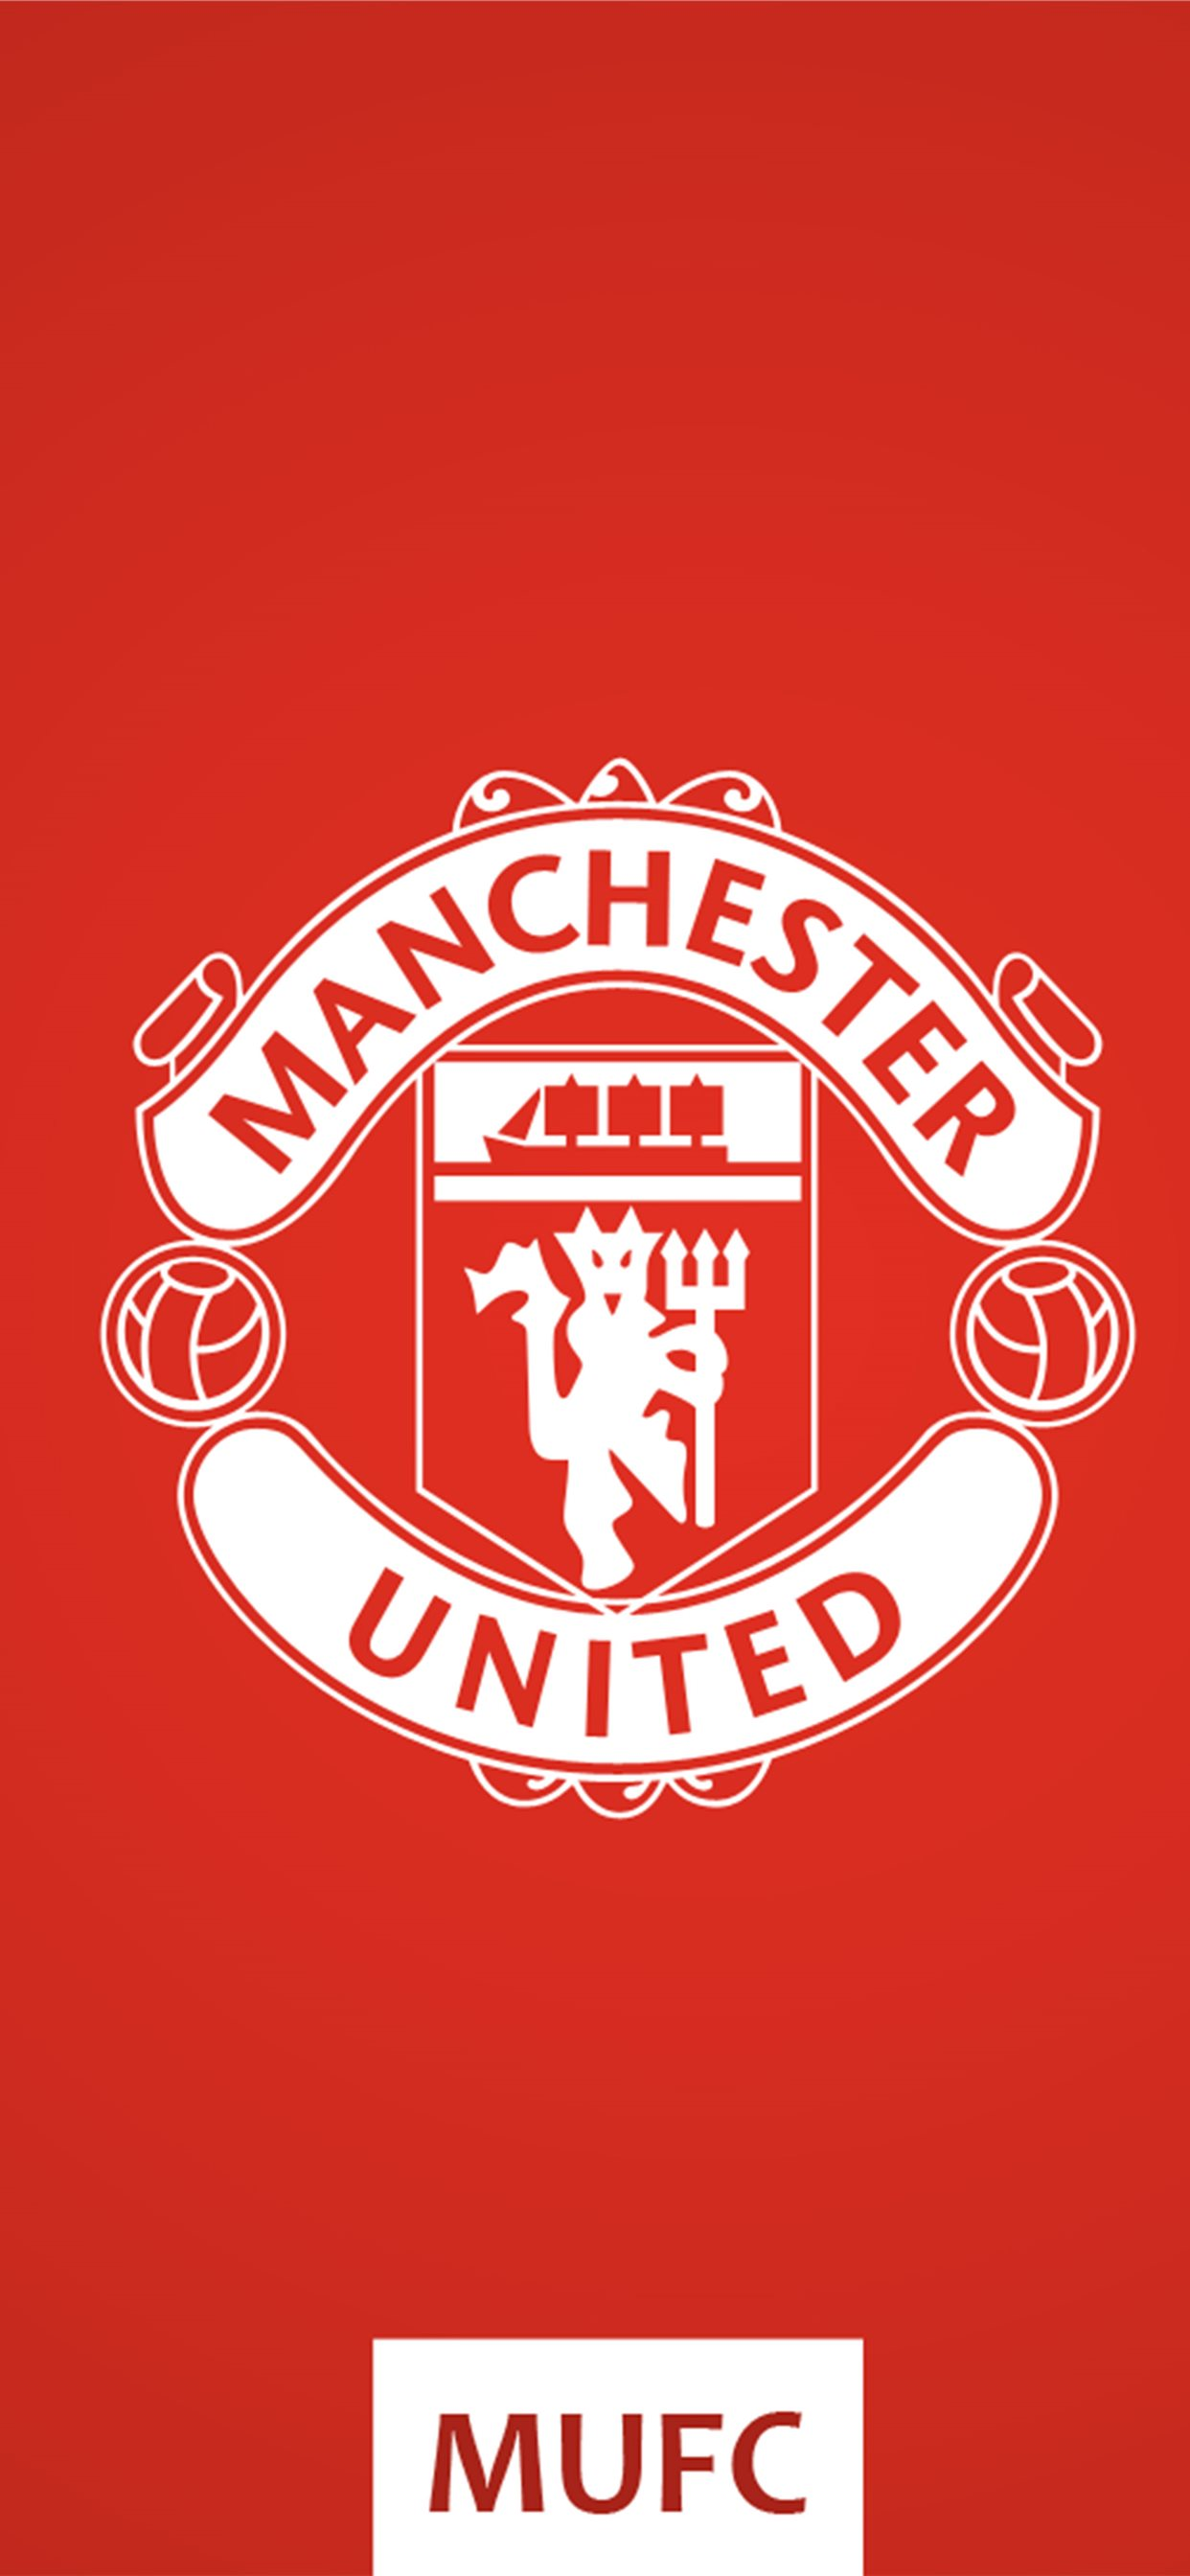 Manchester United Fc Logo Red Background Free 4k U Iphone X Wallpapers Free Download